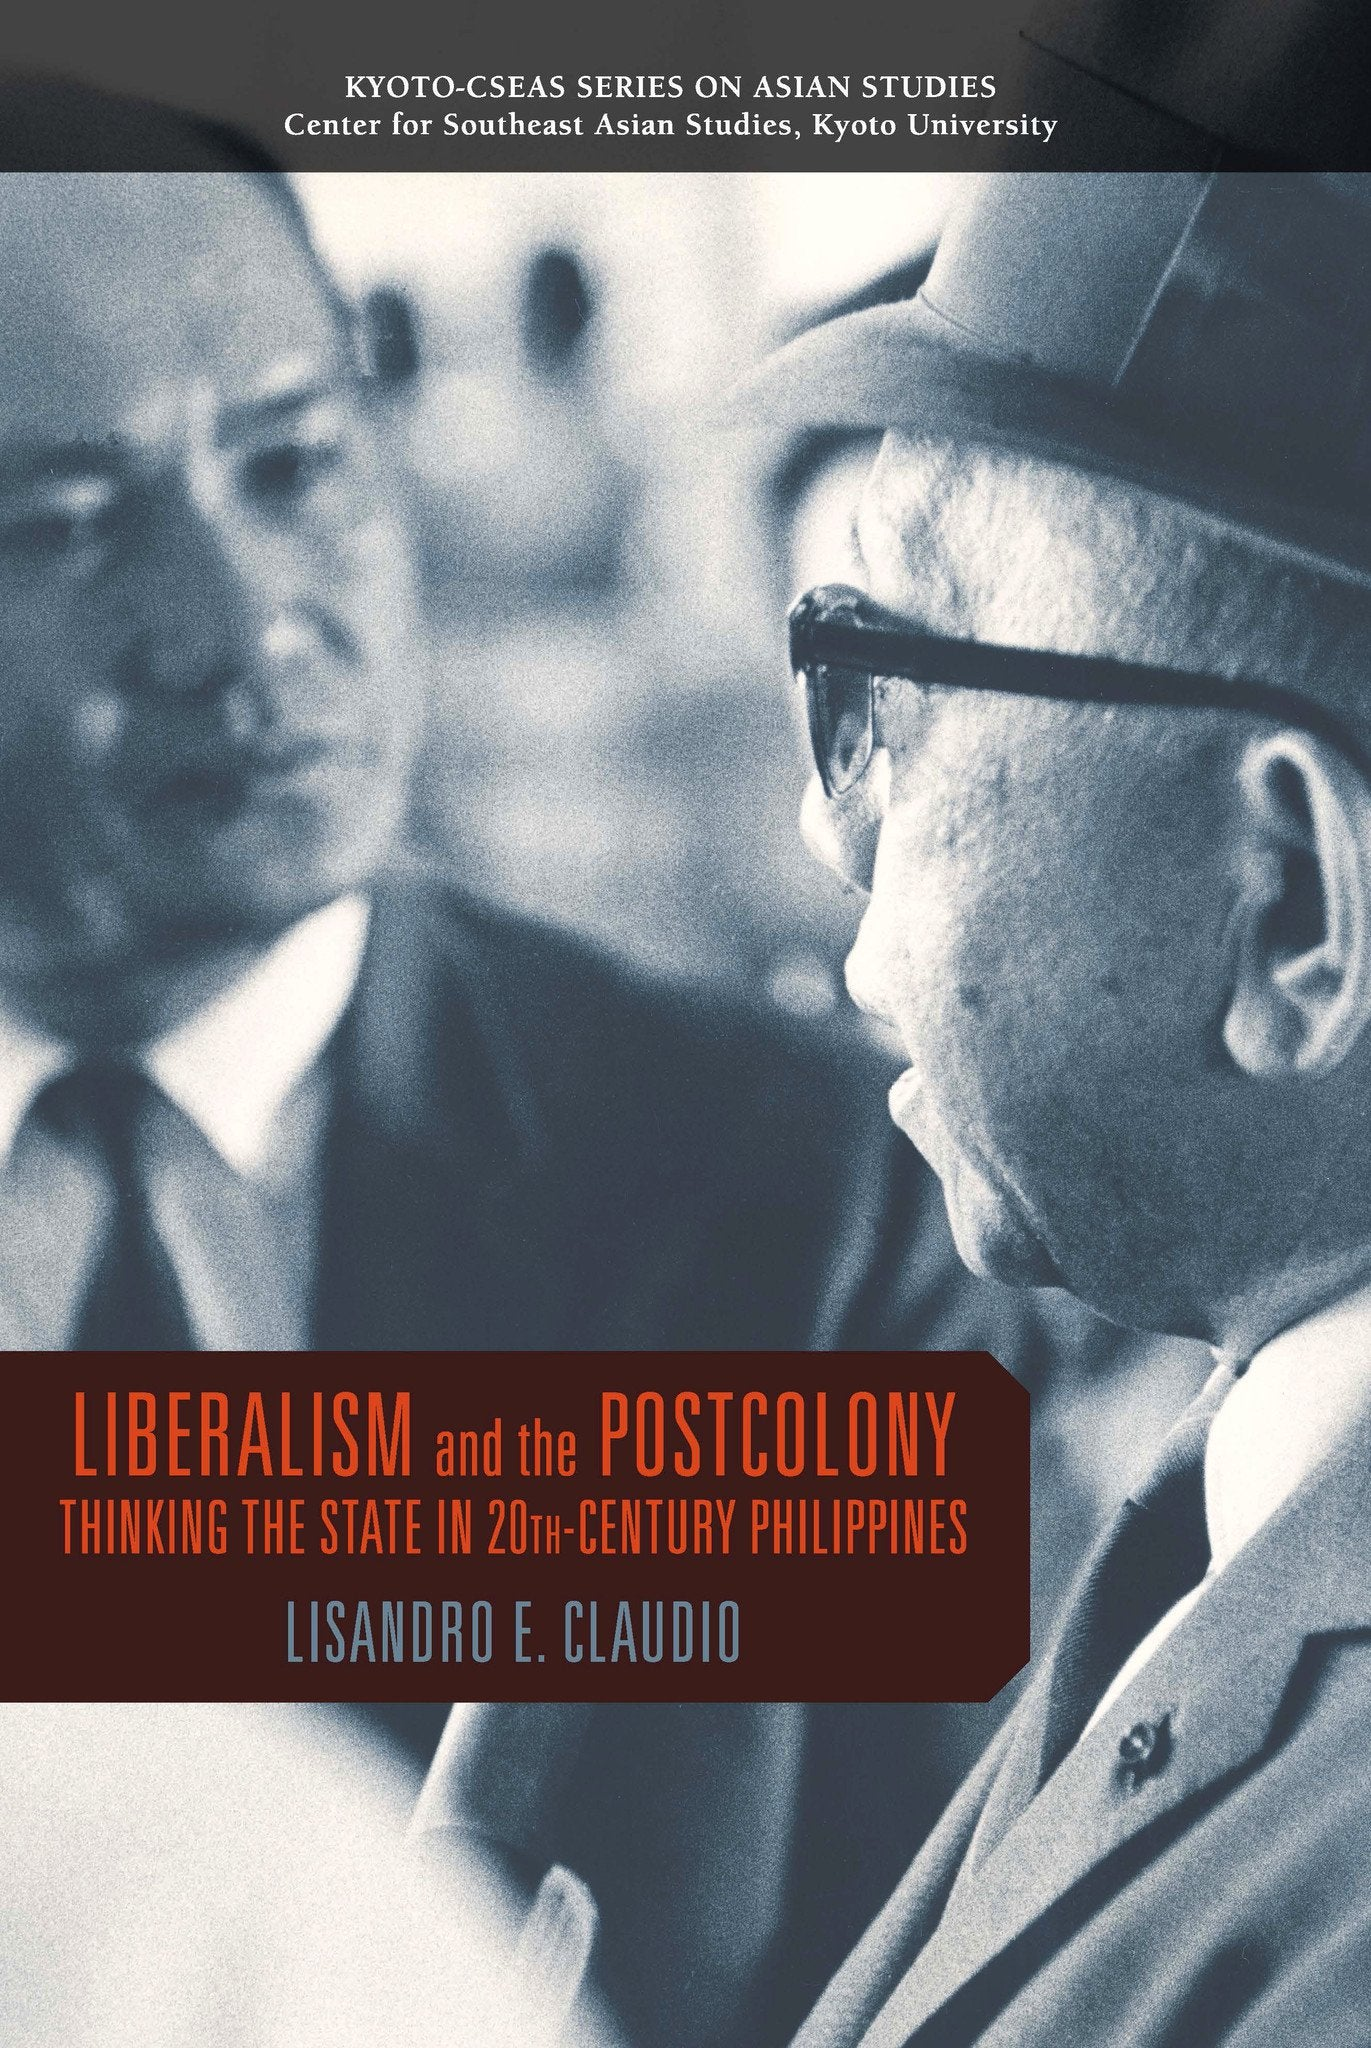 Liberalism and the Postcolony - Localbooks.sg